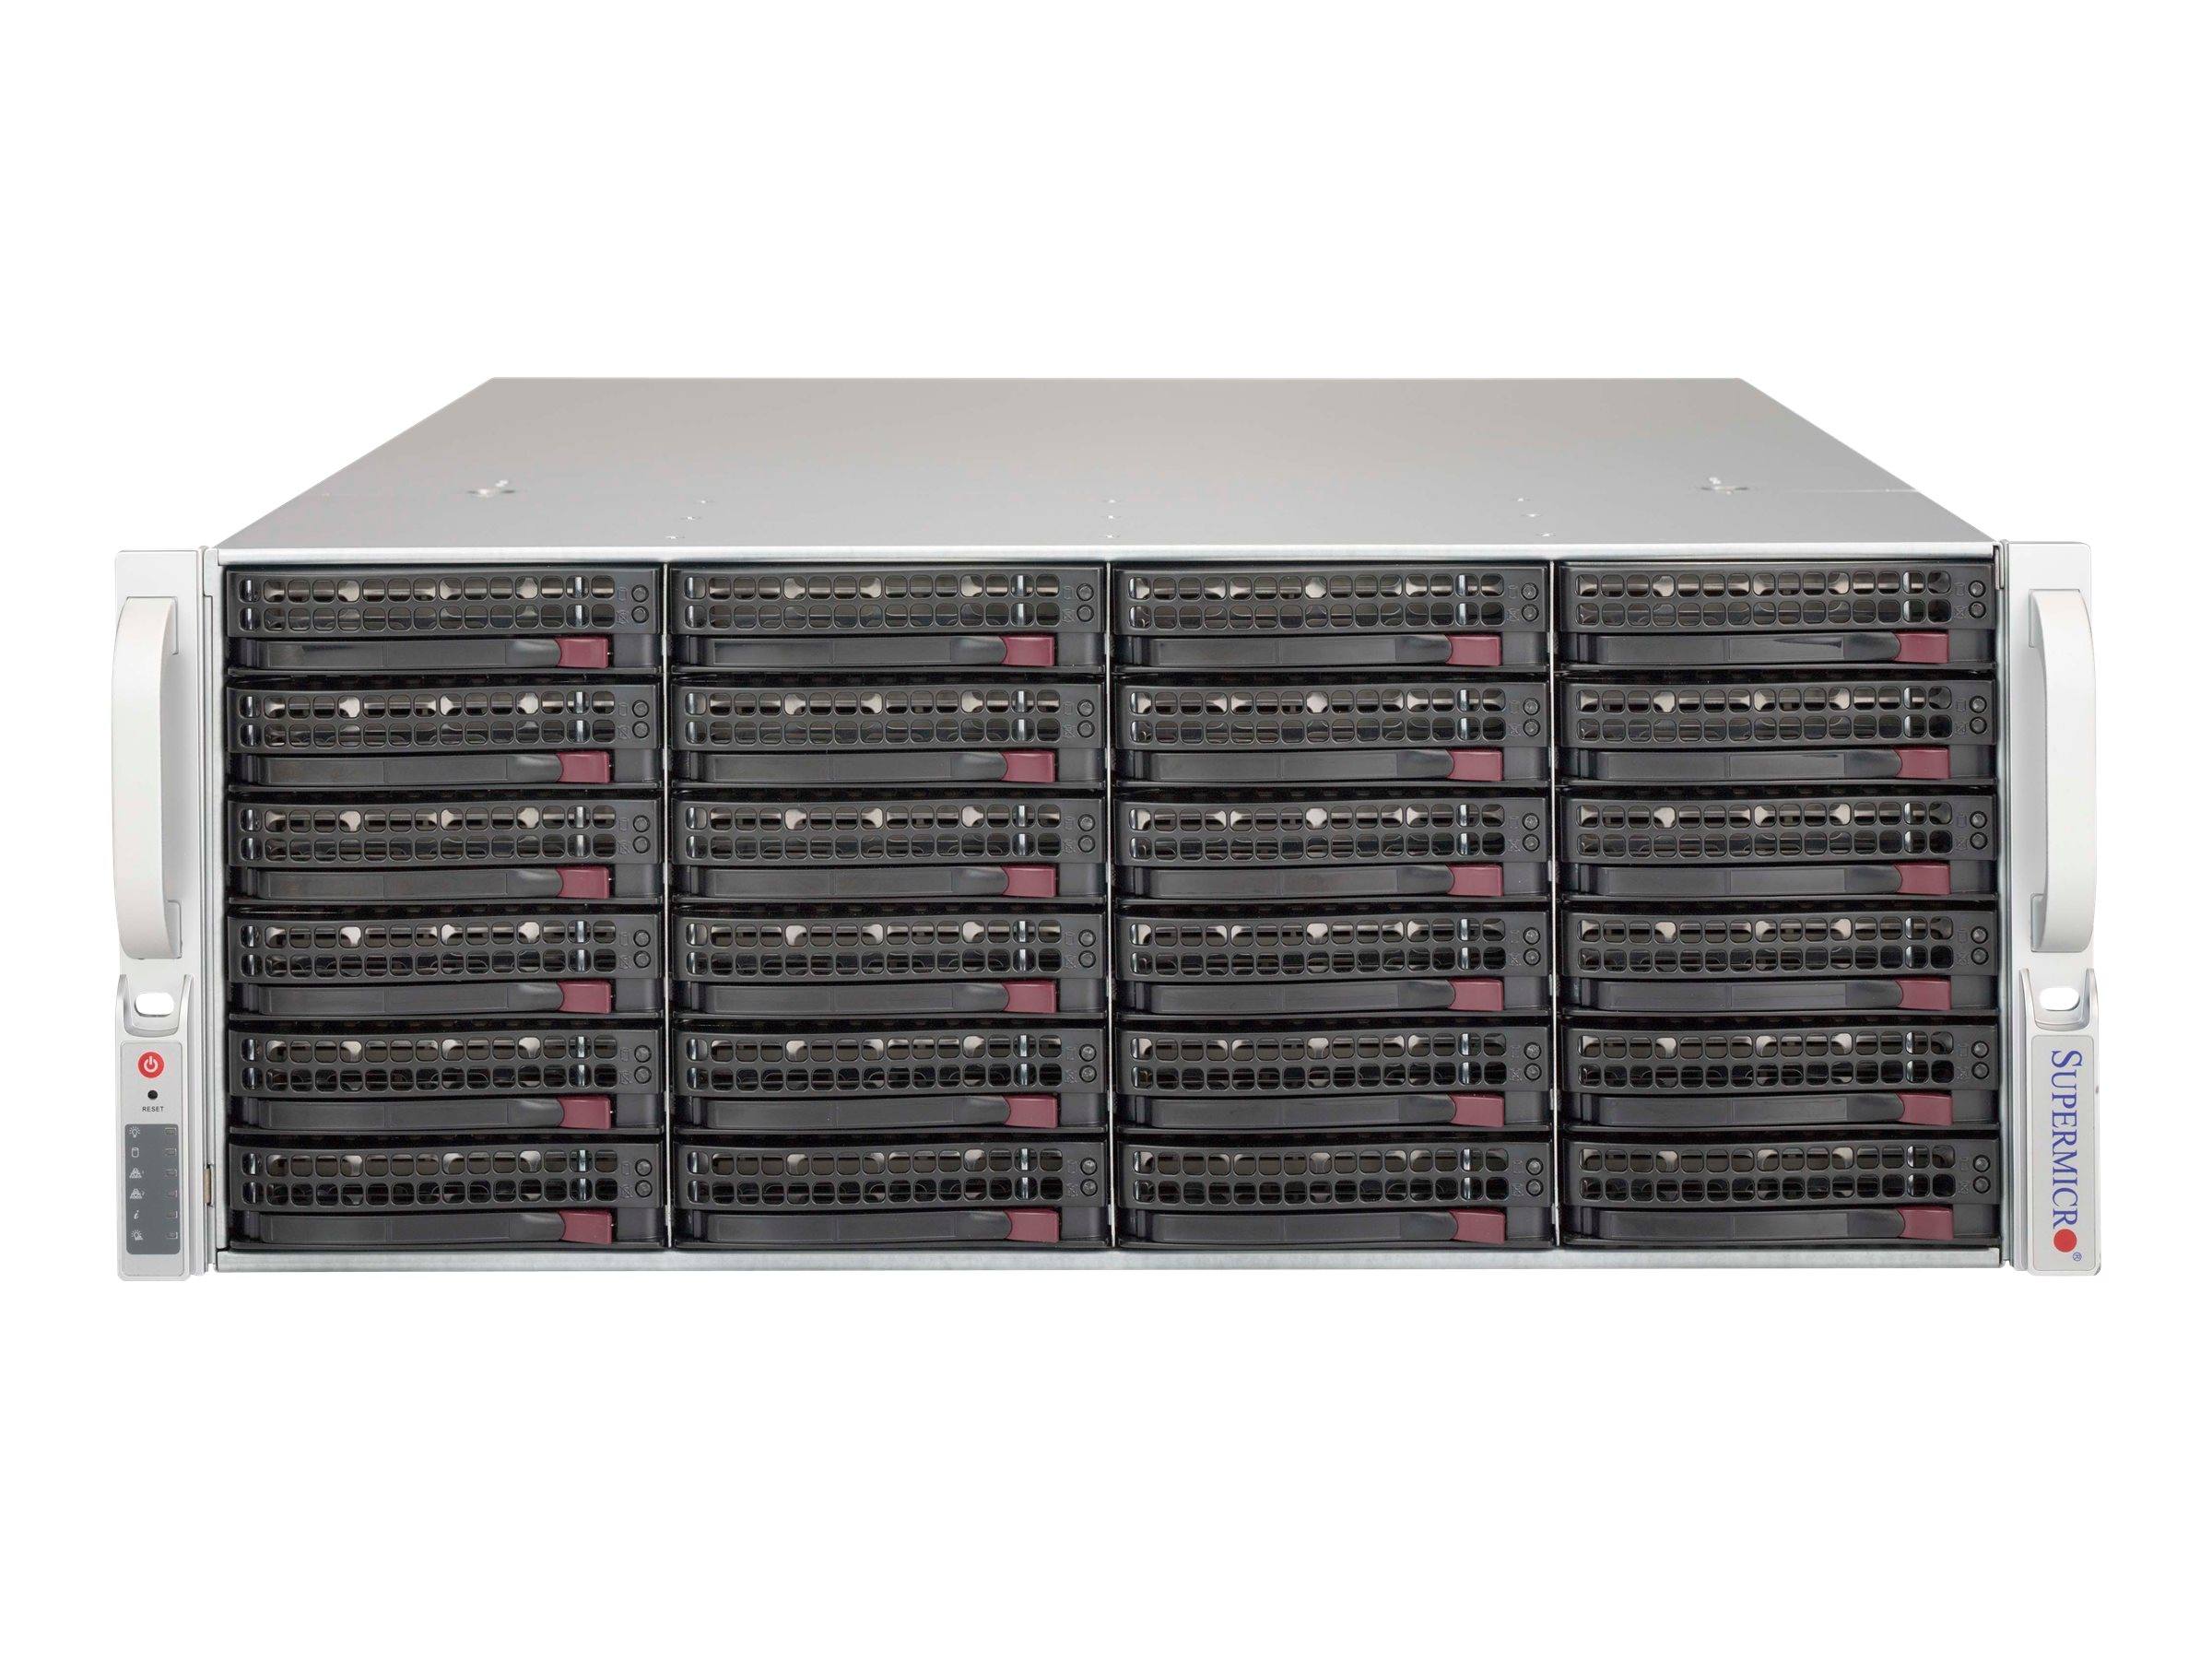 Supermicro Chassis, SuperChassis 846BE1C-R1K03JBOD 4U RM 24x3.5 HS Bays 2x1000W, CSE-846BE1C-R1K03JBOD